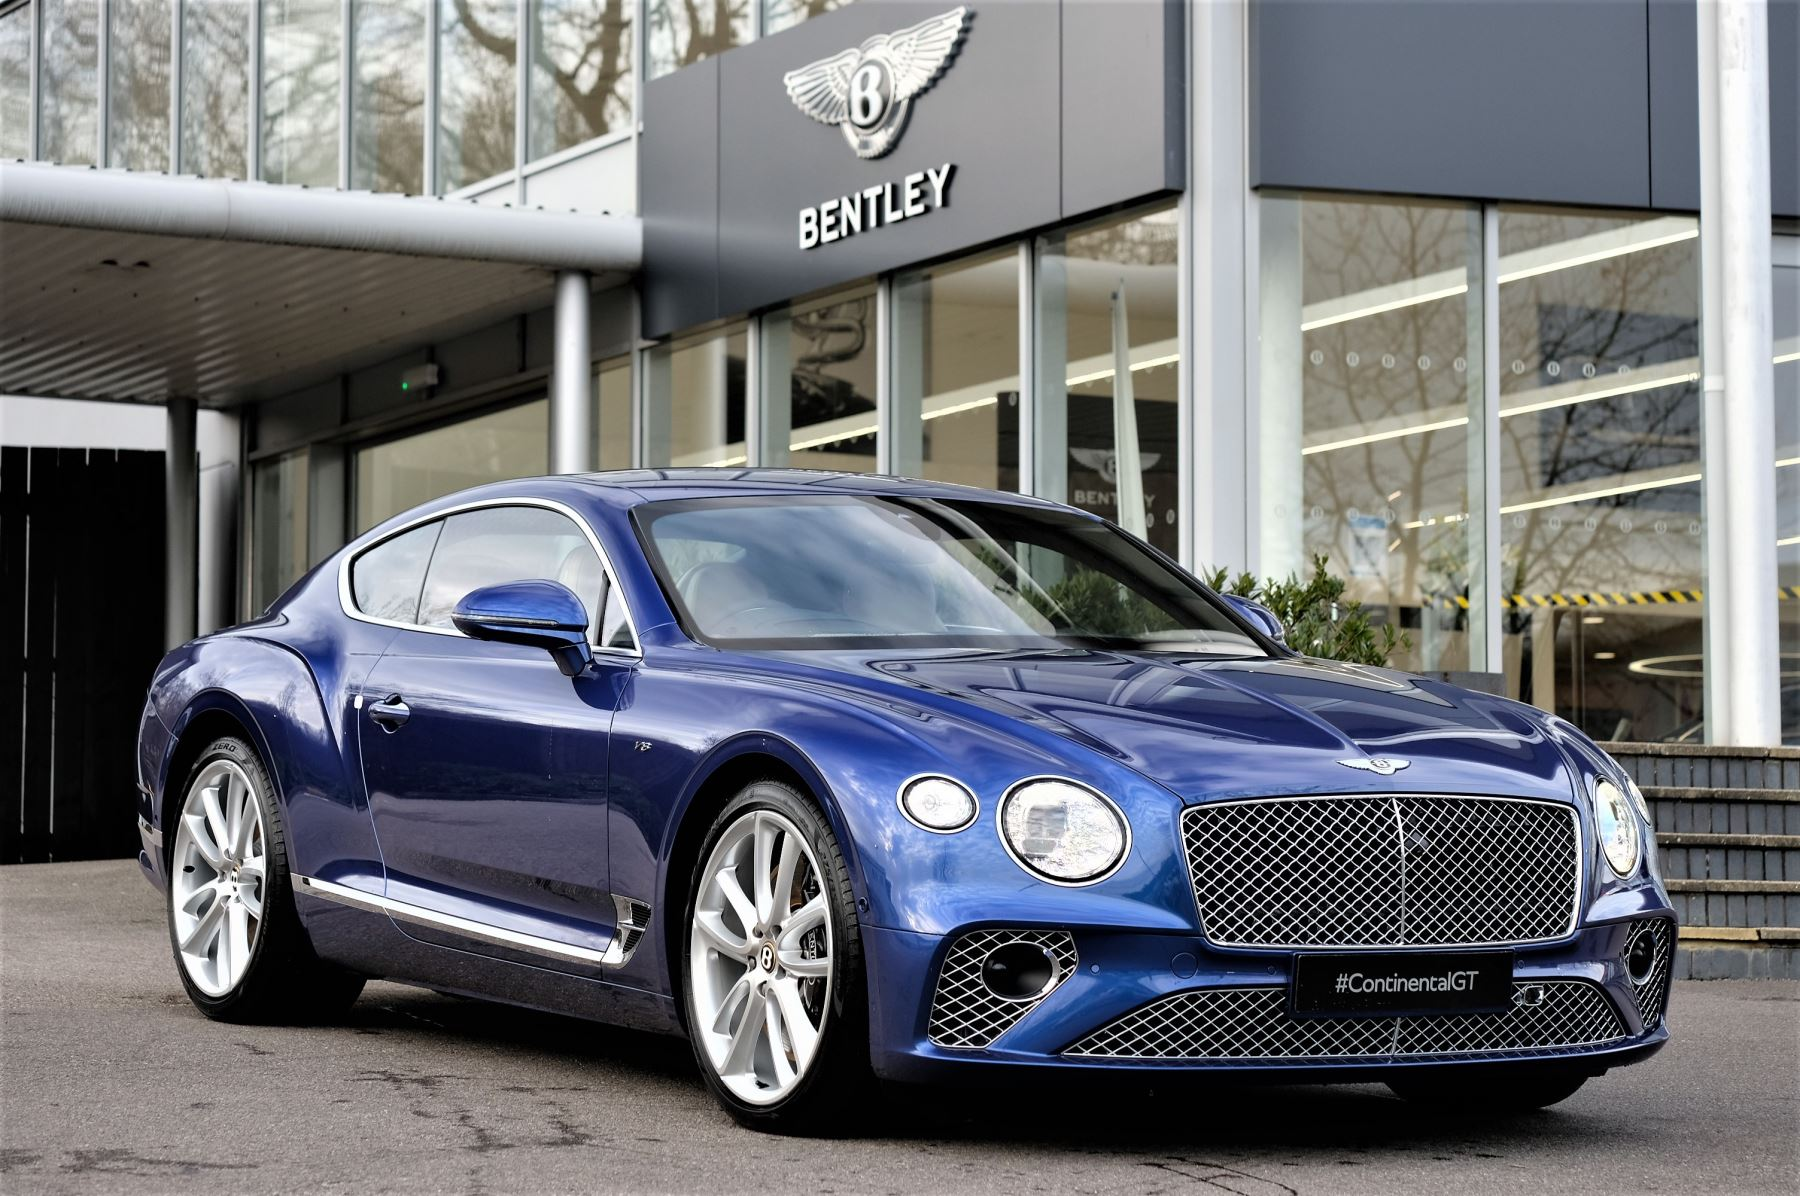 Bentley Continental GT 4.0 V8 Mulliner Driving Spec 2dr Auto - Centenary and Touring Specification image 1